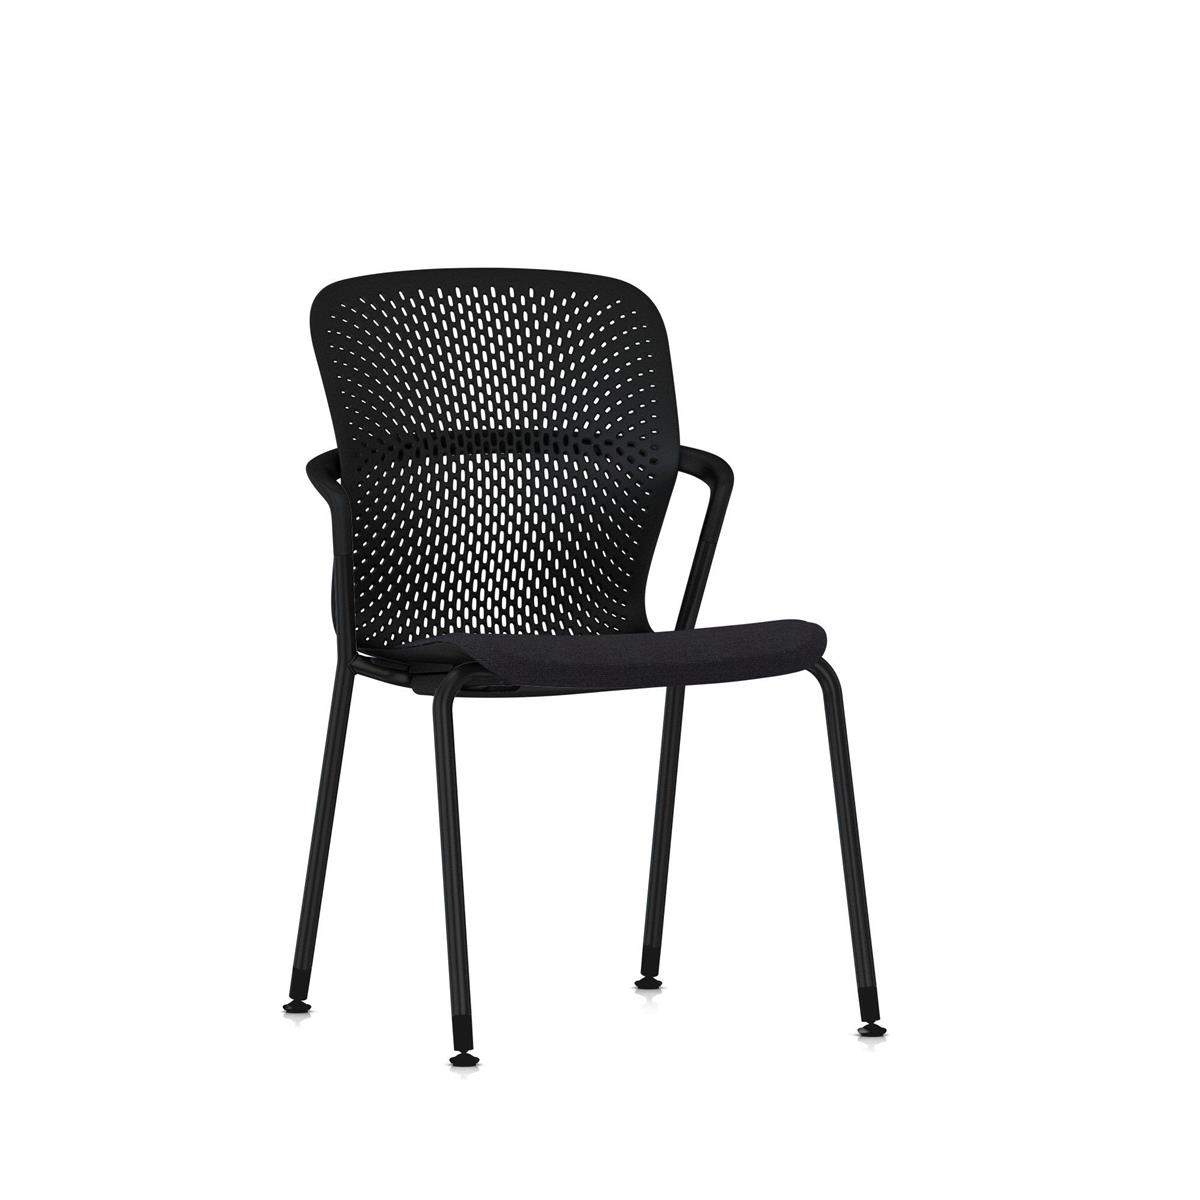 Keyn 4 Leg Chair - Black med  Camira Sprint tekstil og glidere